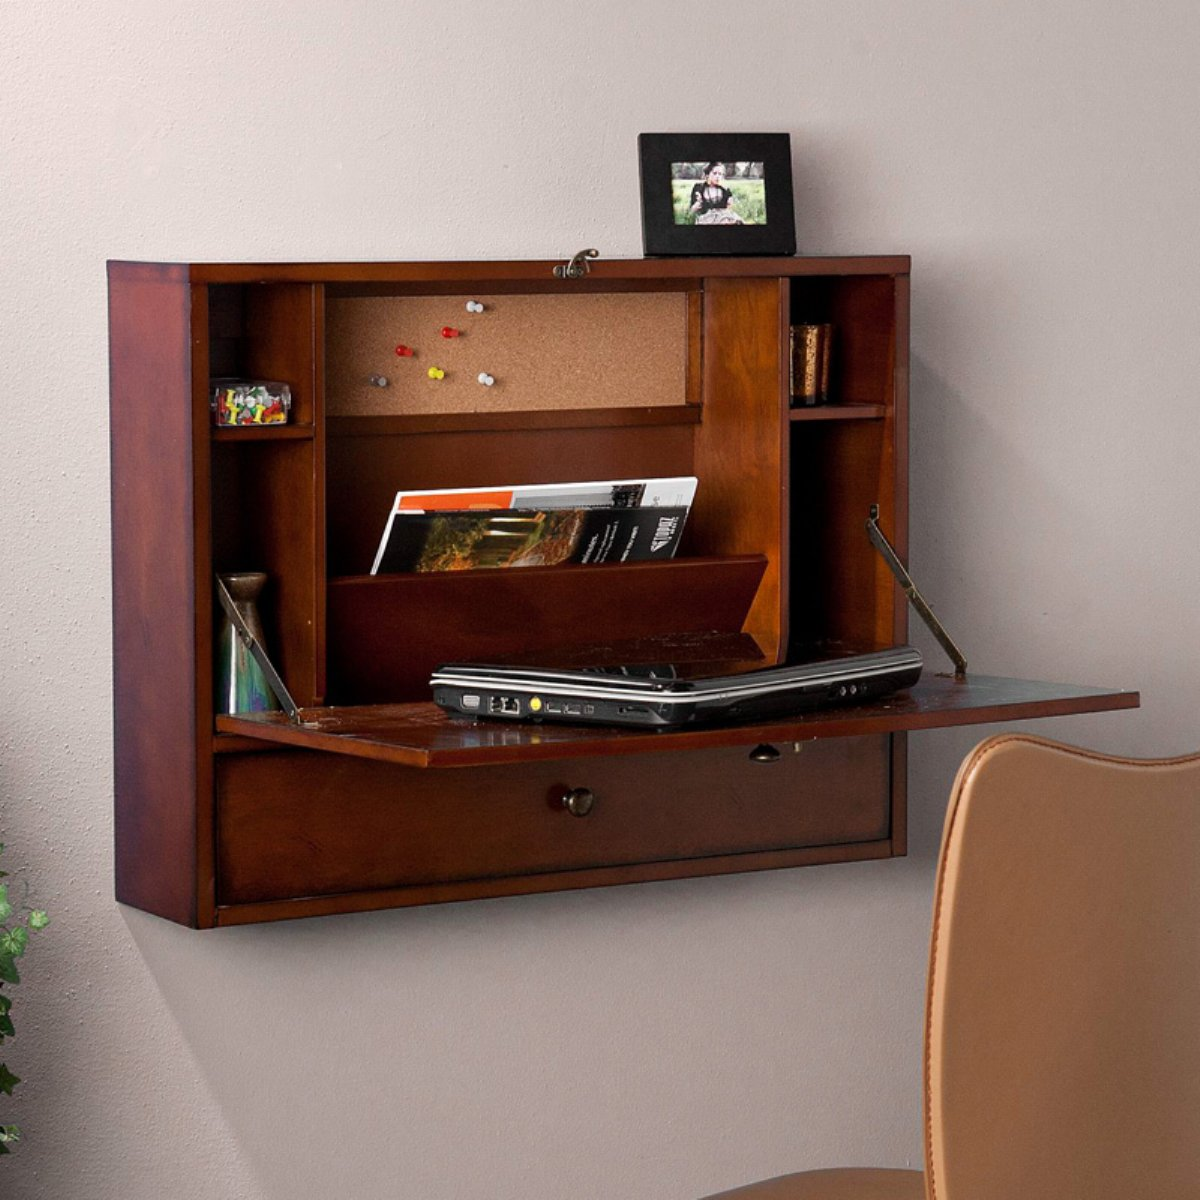 Beau Wall Mounted Writing Desks For Small Spaces With Storage Feat Comfy Chair  And Photo Frame